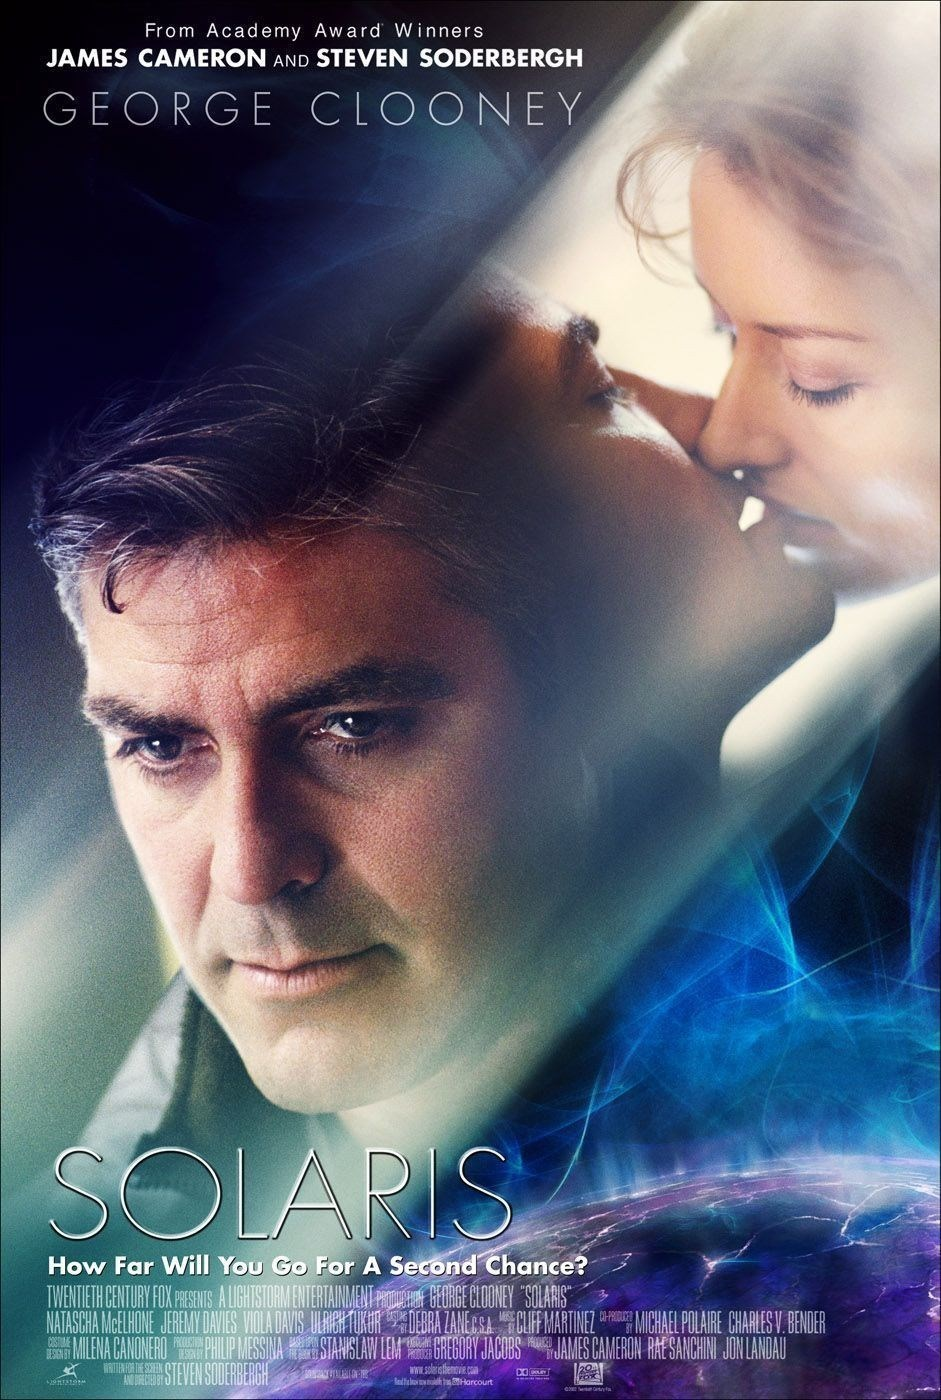 Solaris 2002 – Watch Movie and TV Show PubFilm HD Free